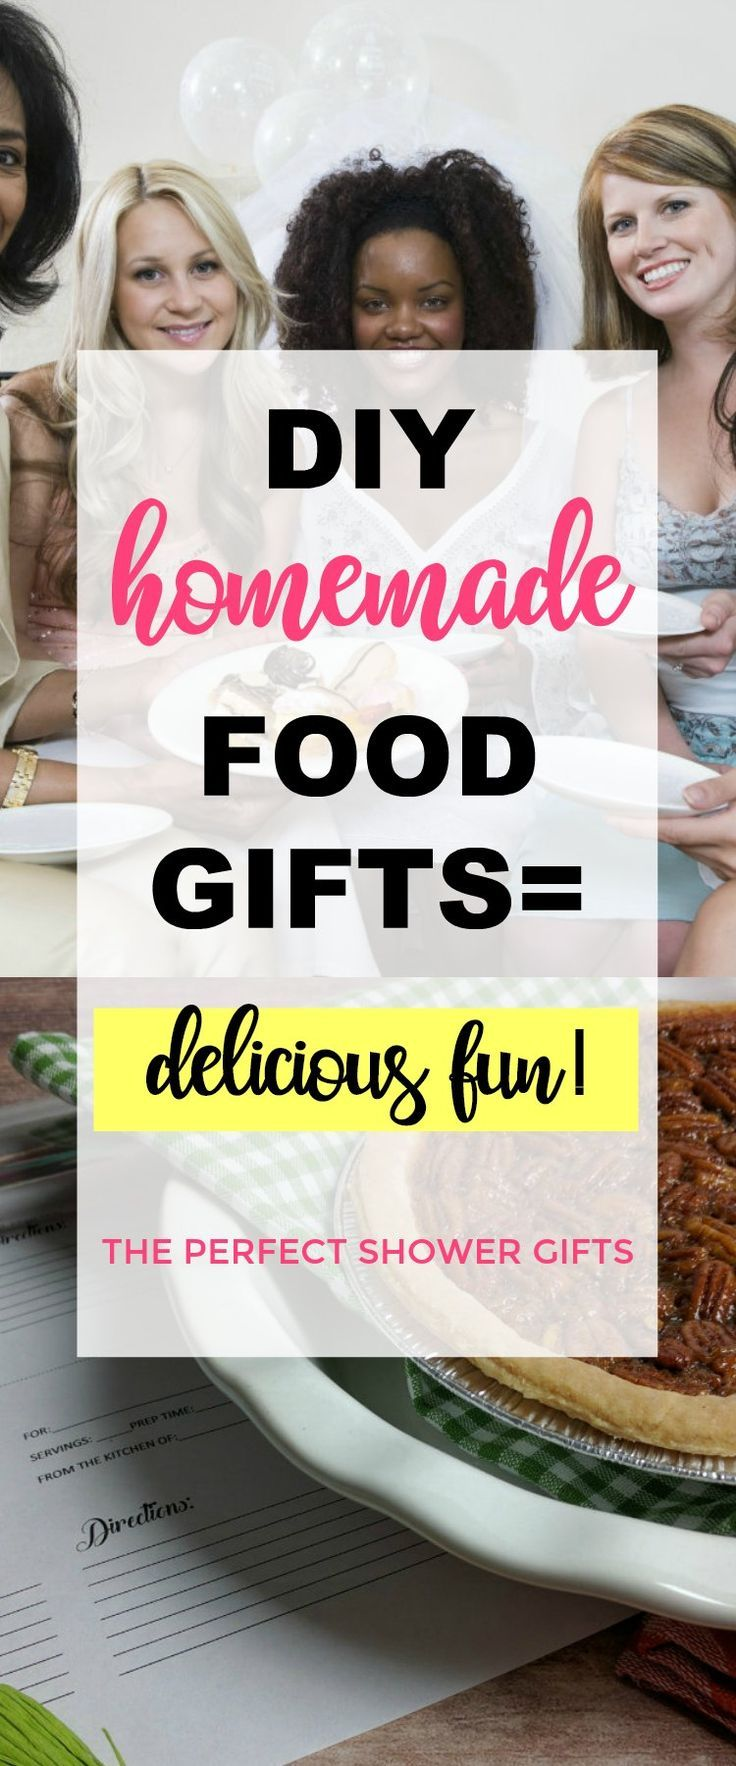 Homemade food gifts how to wrap a pie as a gift and printable